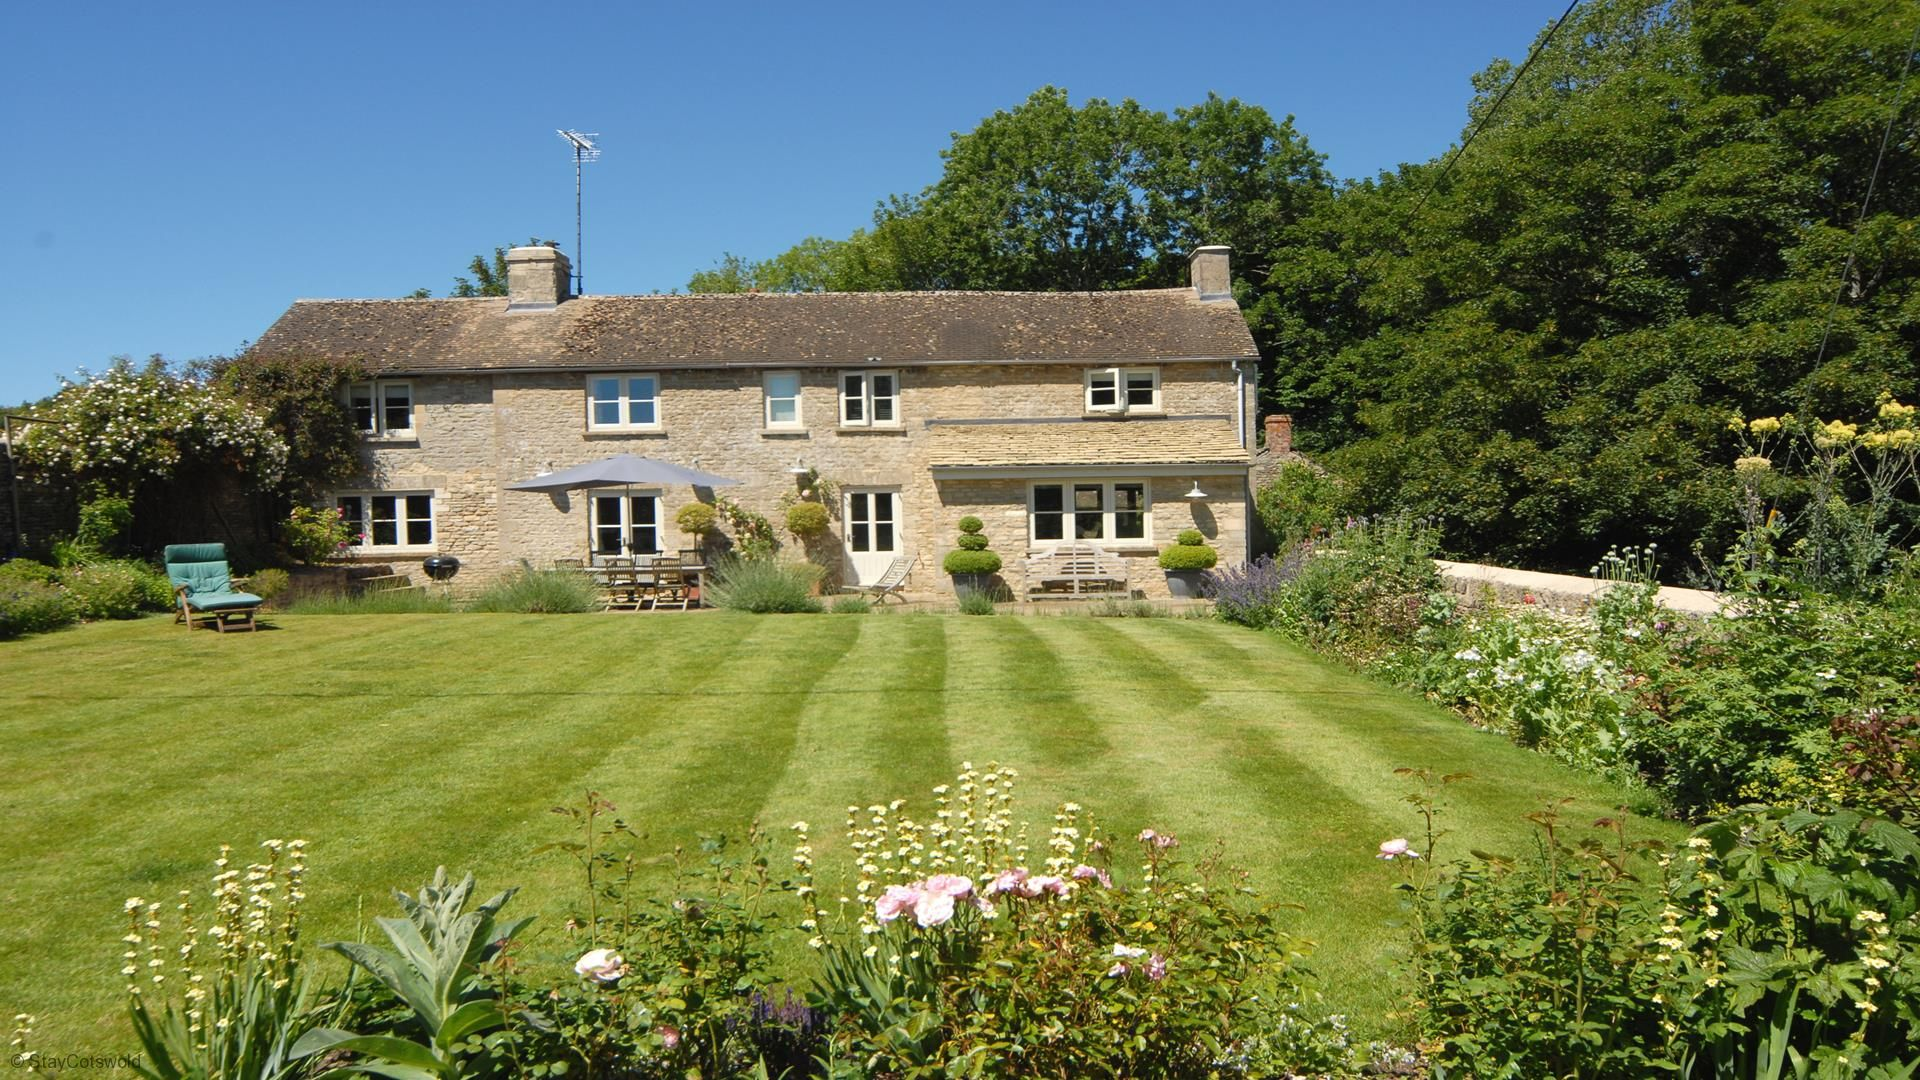 Mill Bank House - StayCotswold